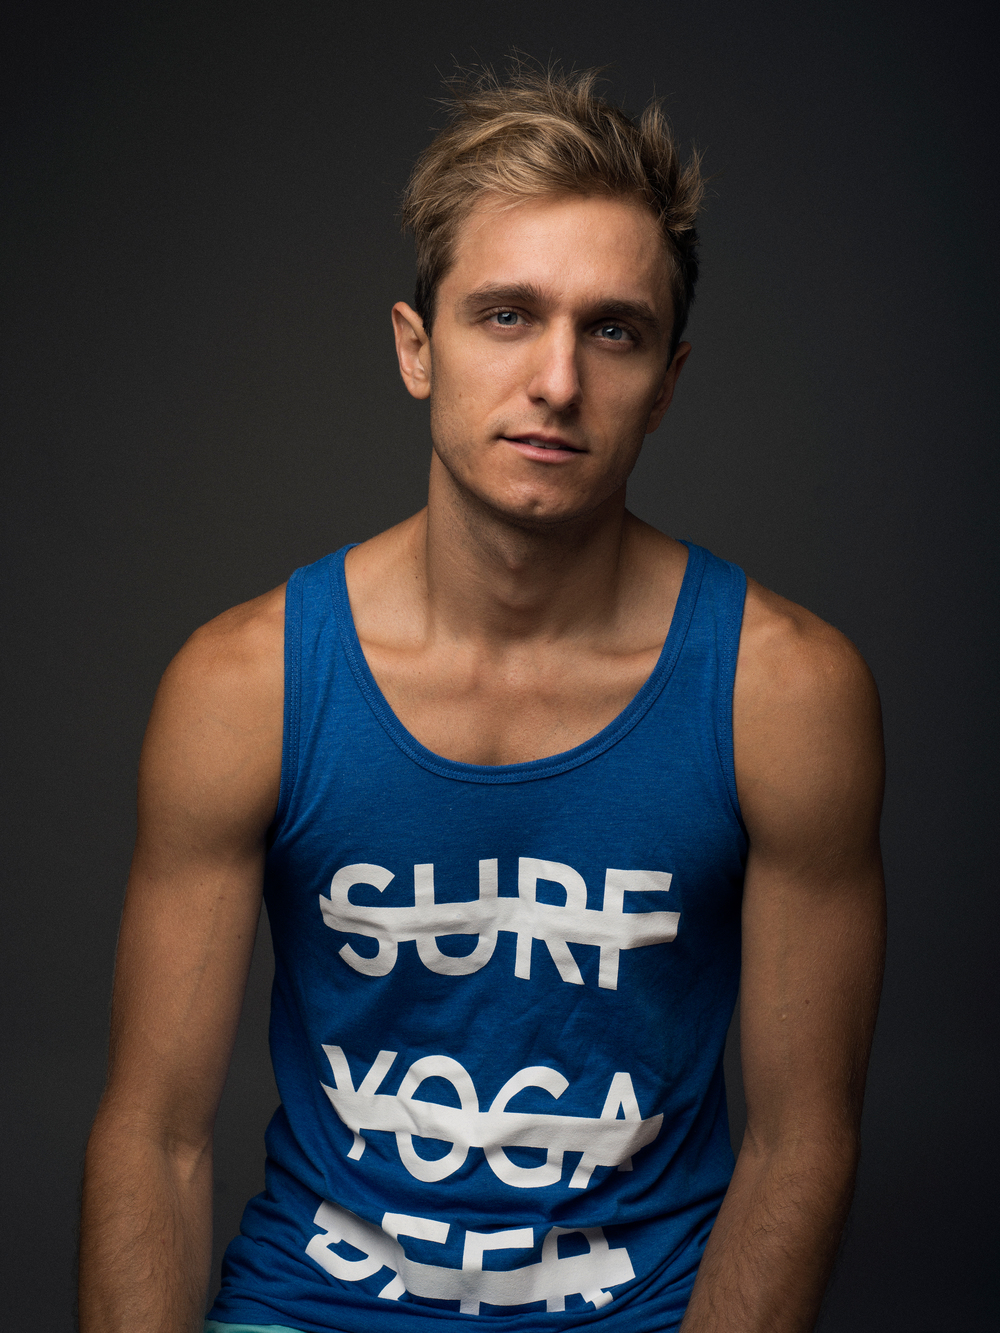 MANTAS ZVINAS, coordinator + surf instructor